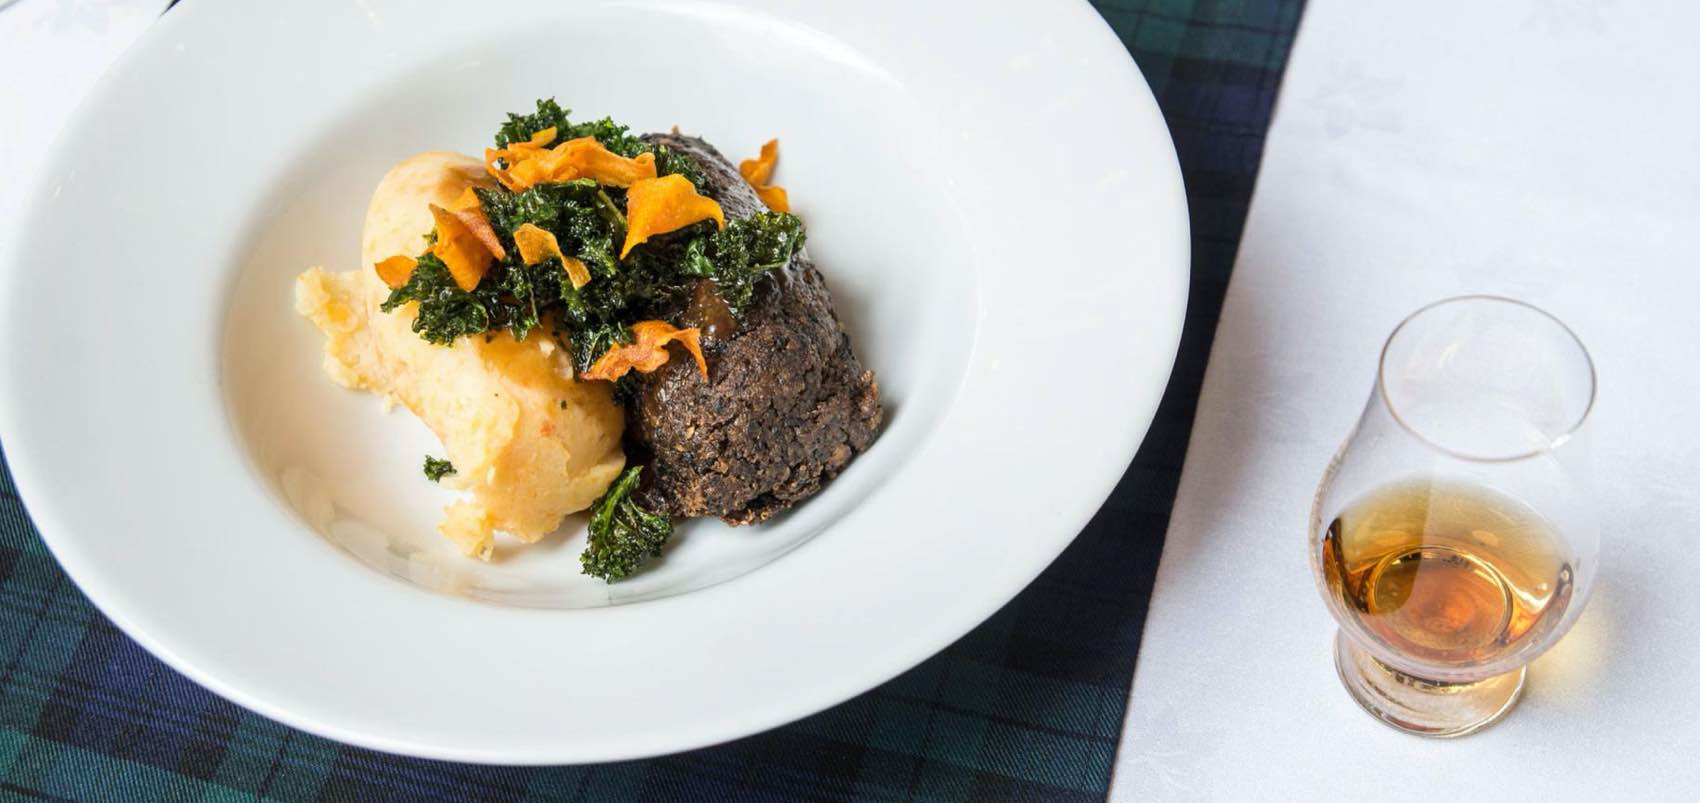 National specialities: Haggis and whisky served in Scotland